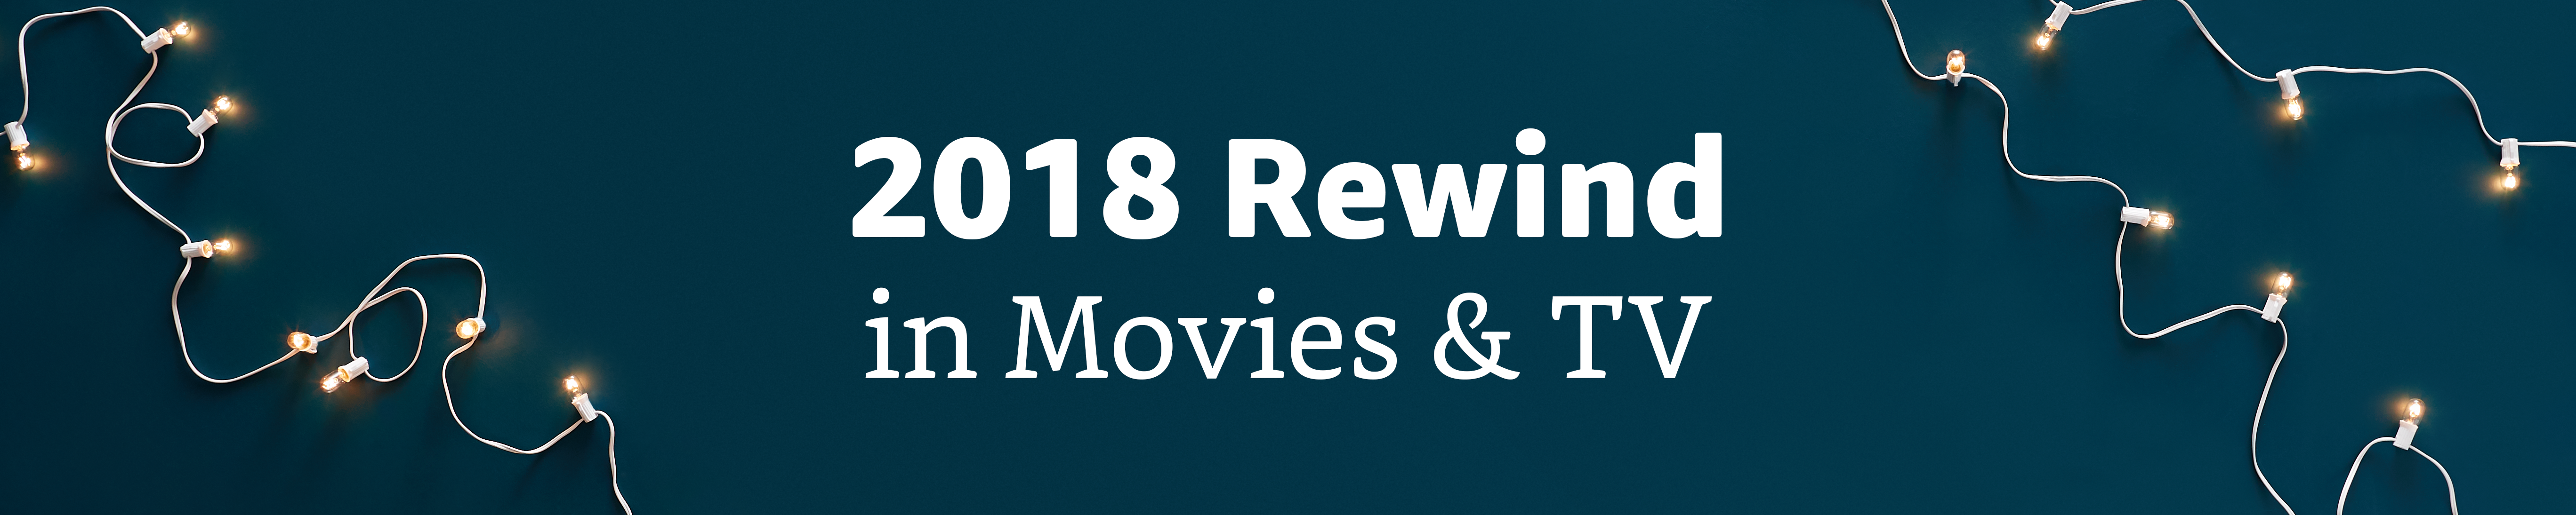 2018 Rewind in Movies & TV